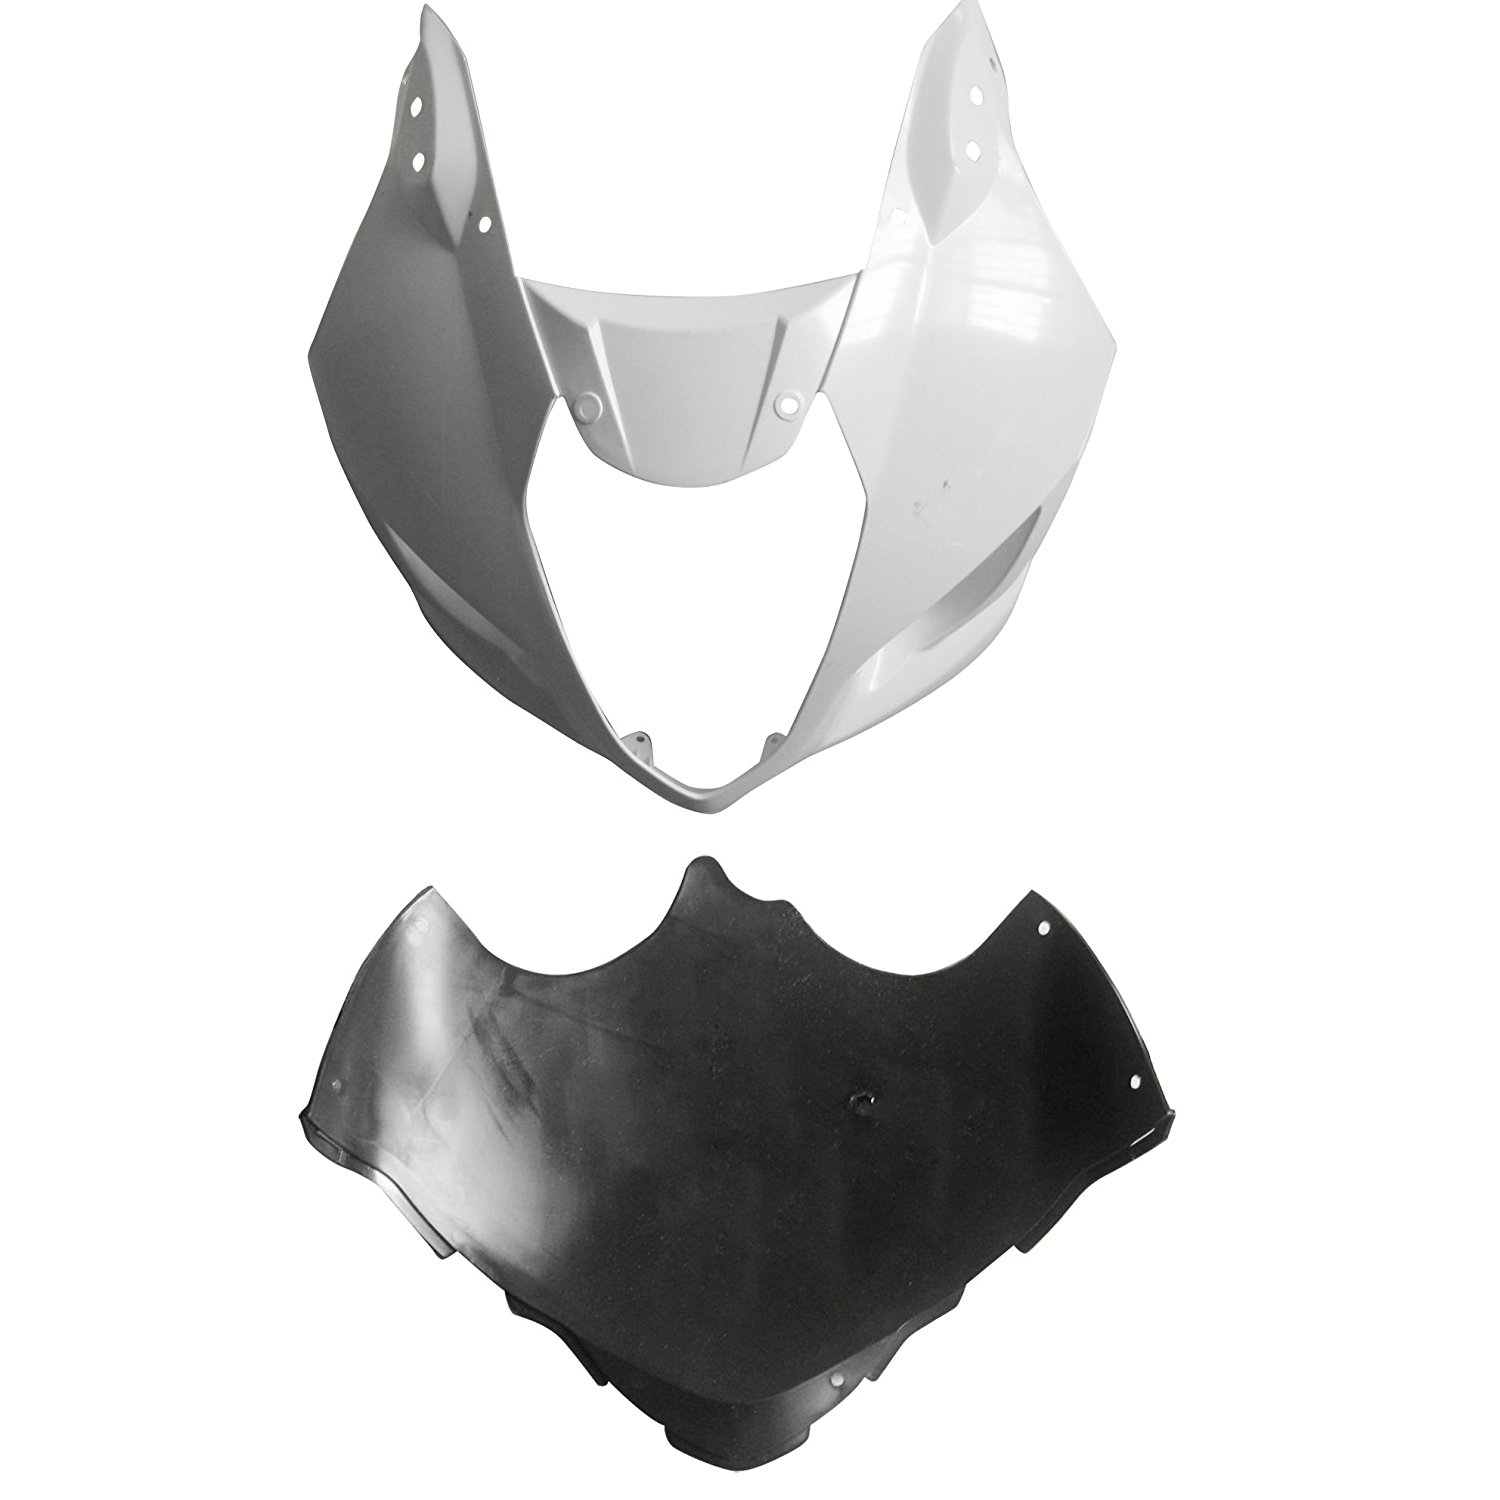 Motorcycle Unpainted Front Upper Nose Fairing For Suzuki GSXR 1000 GSXR1000 2003 2004 GSX-R1000 03 04 Fairings Injection Mold custom road fairing kits for suzuki glossy flat black 2006 gsxr 1000 k5 2005 gsx r1000 06 05 motorcycle fairings kit